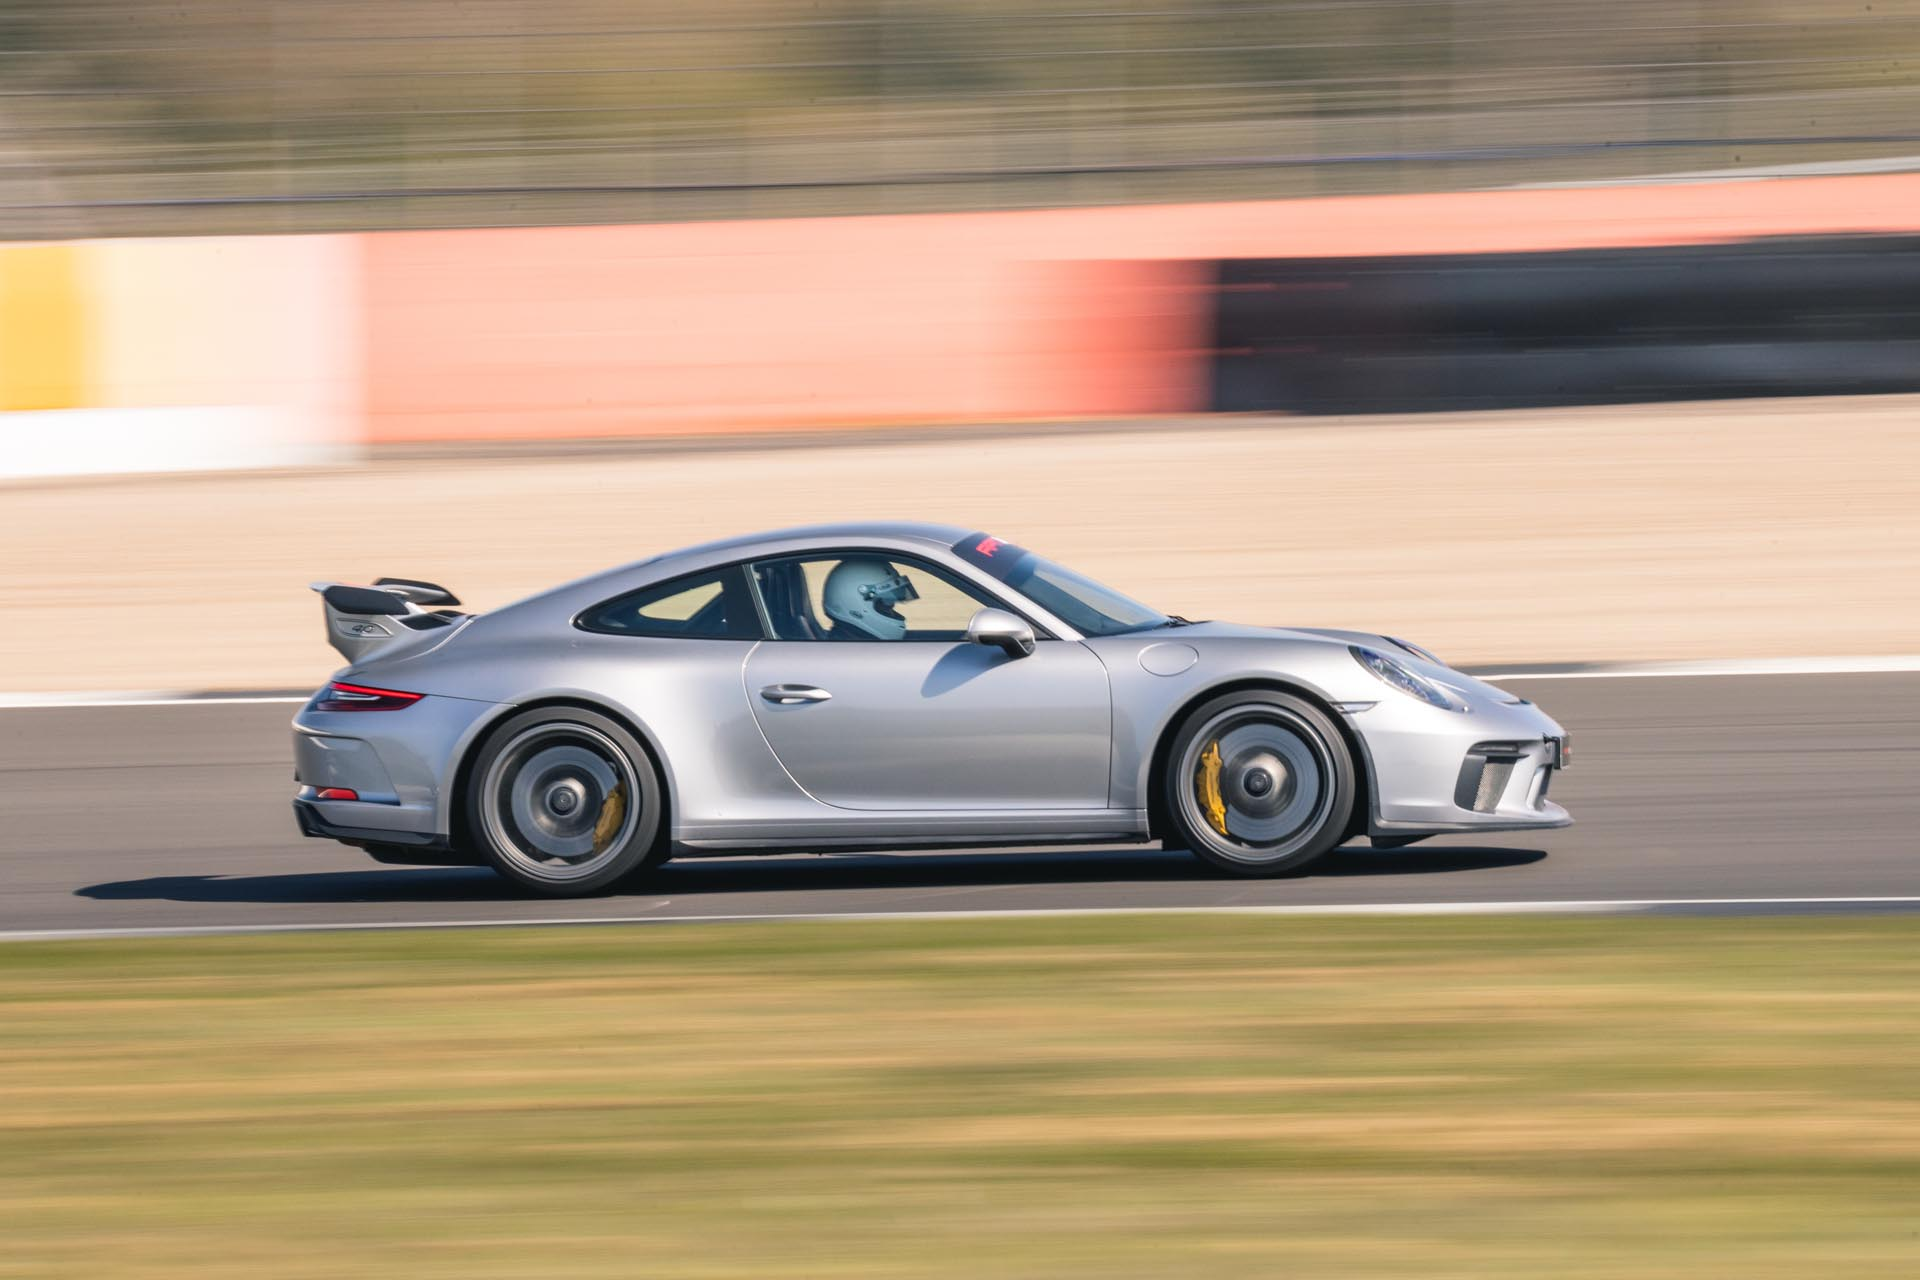 991.2 gt3 on track